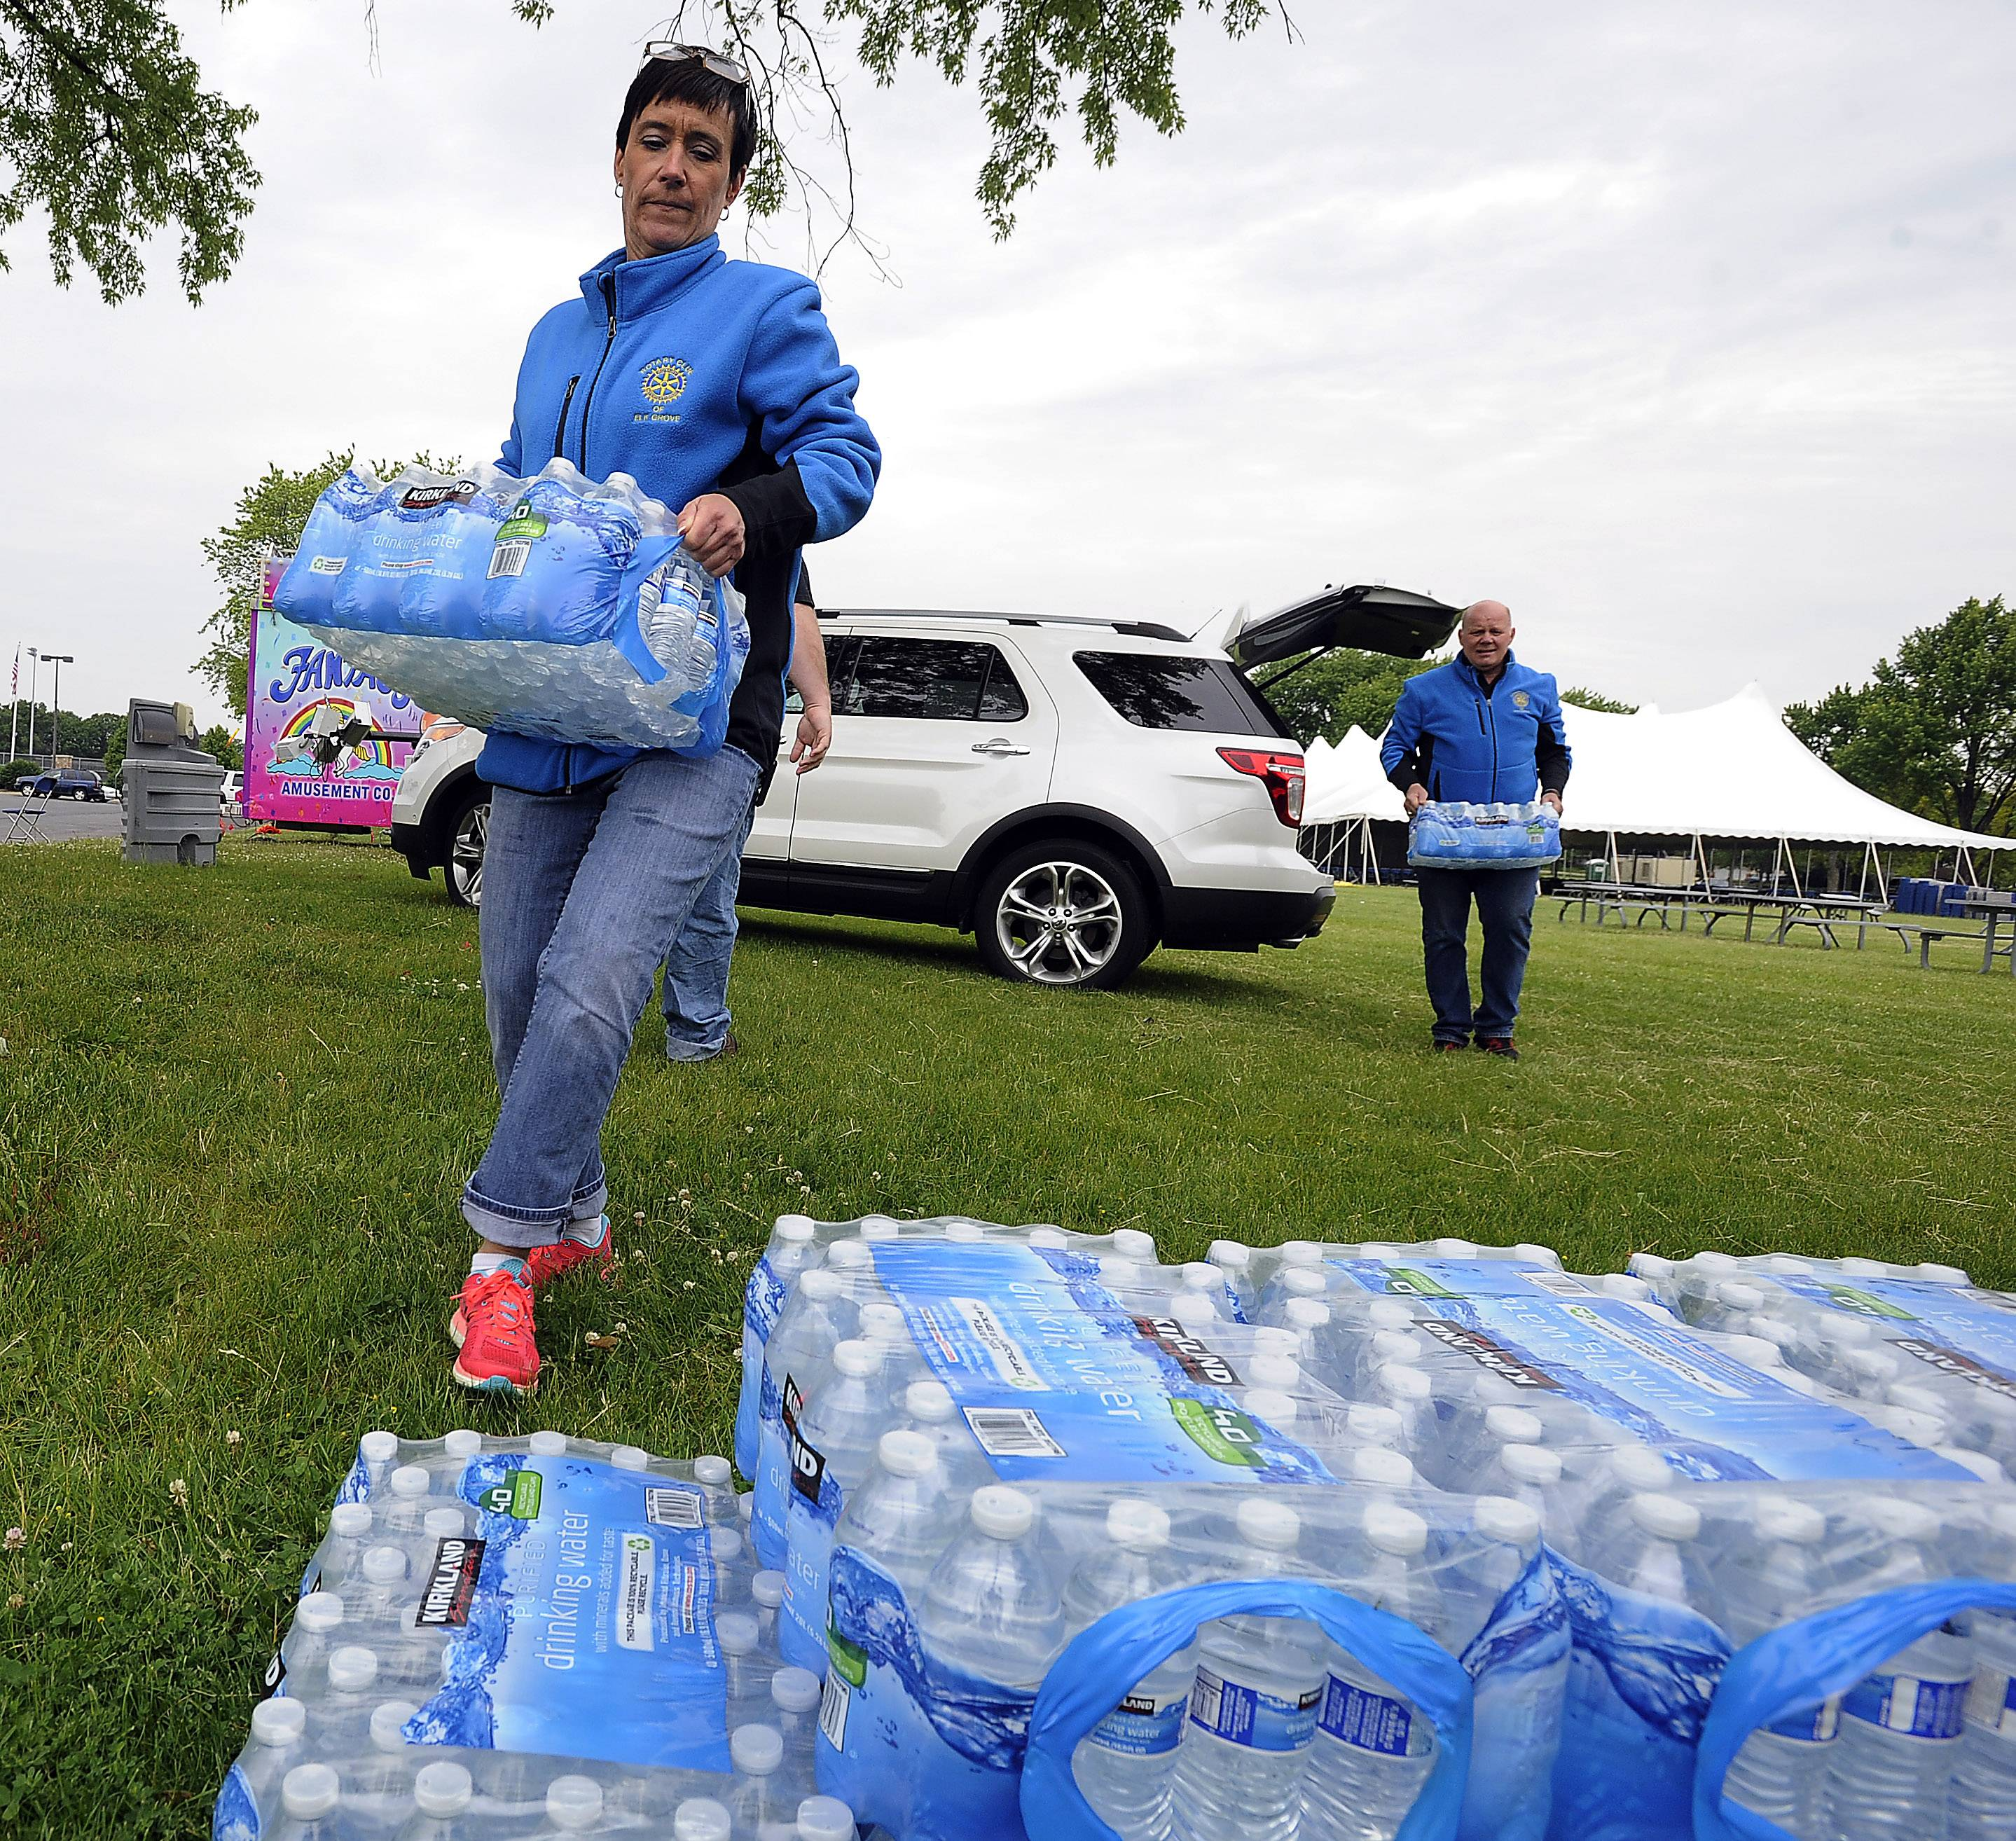 Donna Bartoli, board member, and Bill Marston, Chairman of the Elk Grove Rotary, haul water to the tents as they prepare for the 2014 RotaryFest carnival in Lions Park in Elk Grove Village.